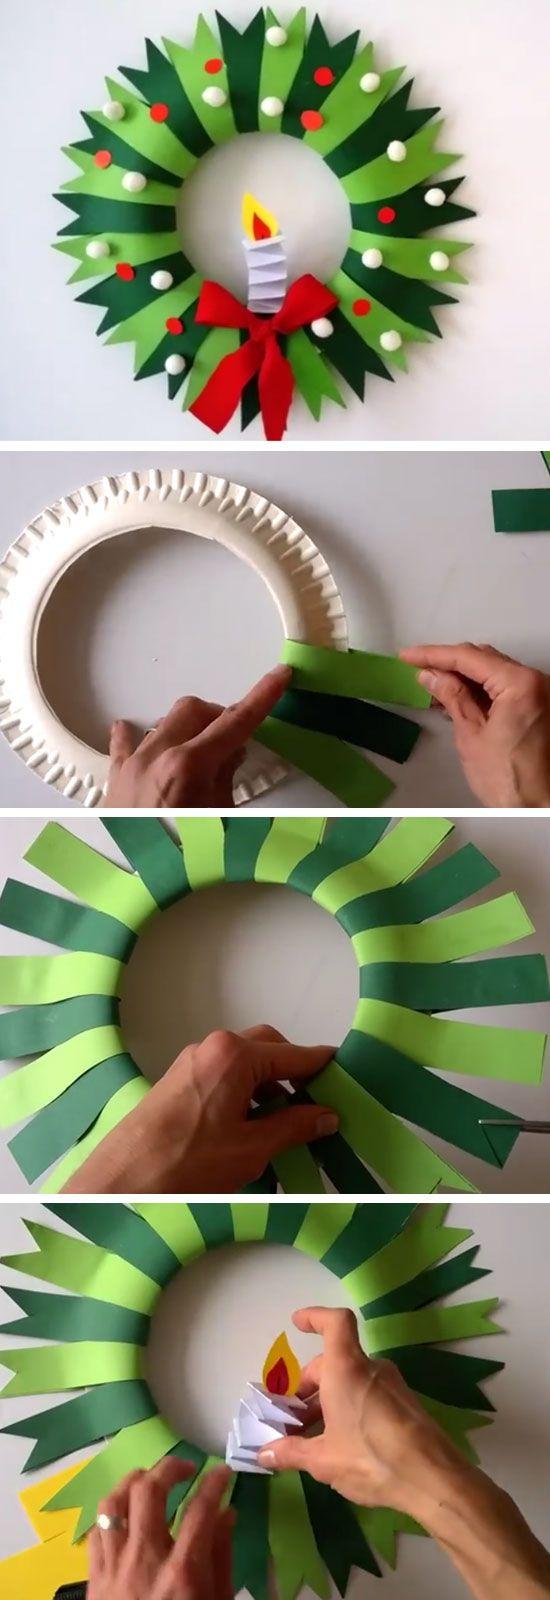 Easy Paper Wreath | DIY Christmas Wreath for Front Door Preschool Learning https://www.amazon.com/Kingseye-Painting-Education-Cognitive-Colouring/dp/B075C661CM